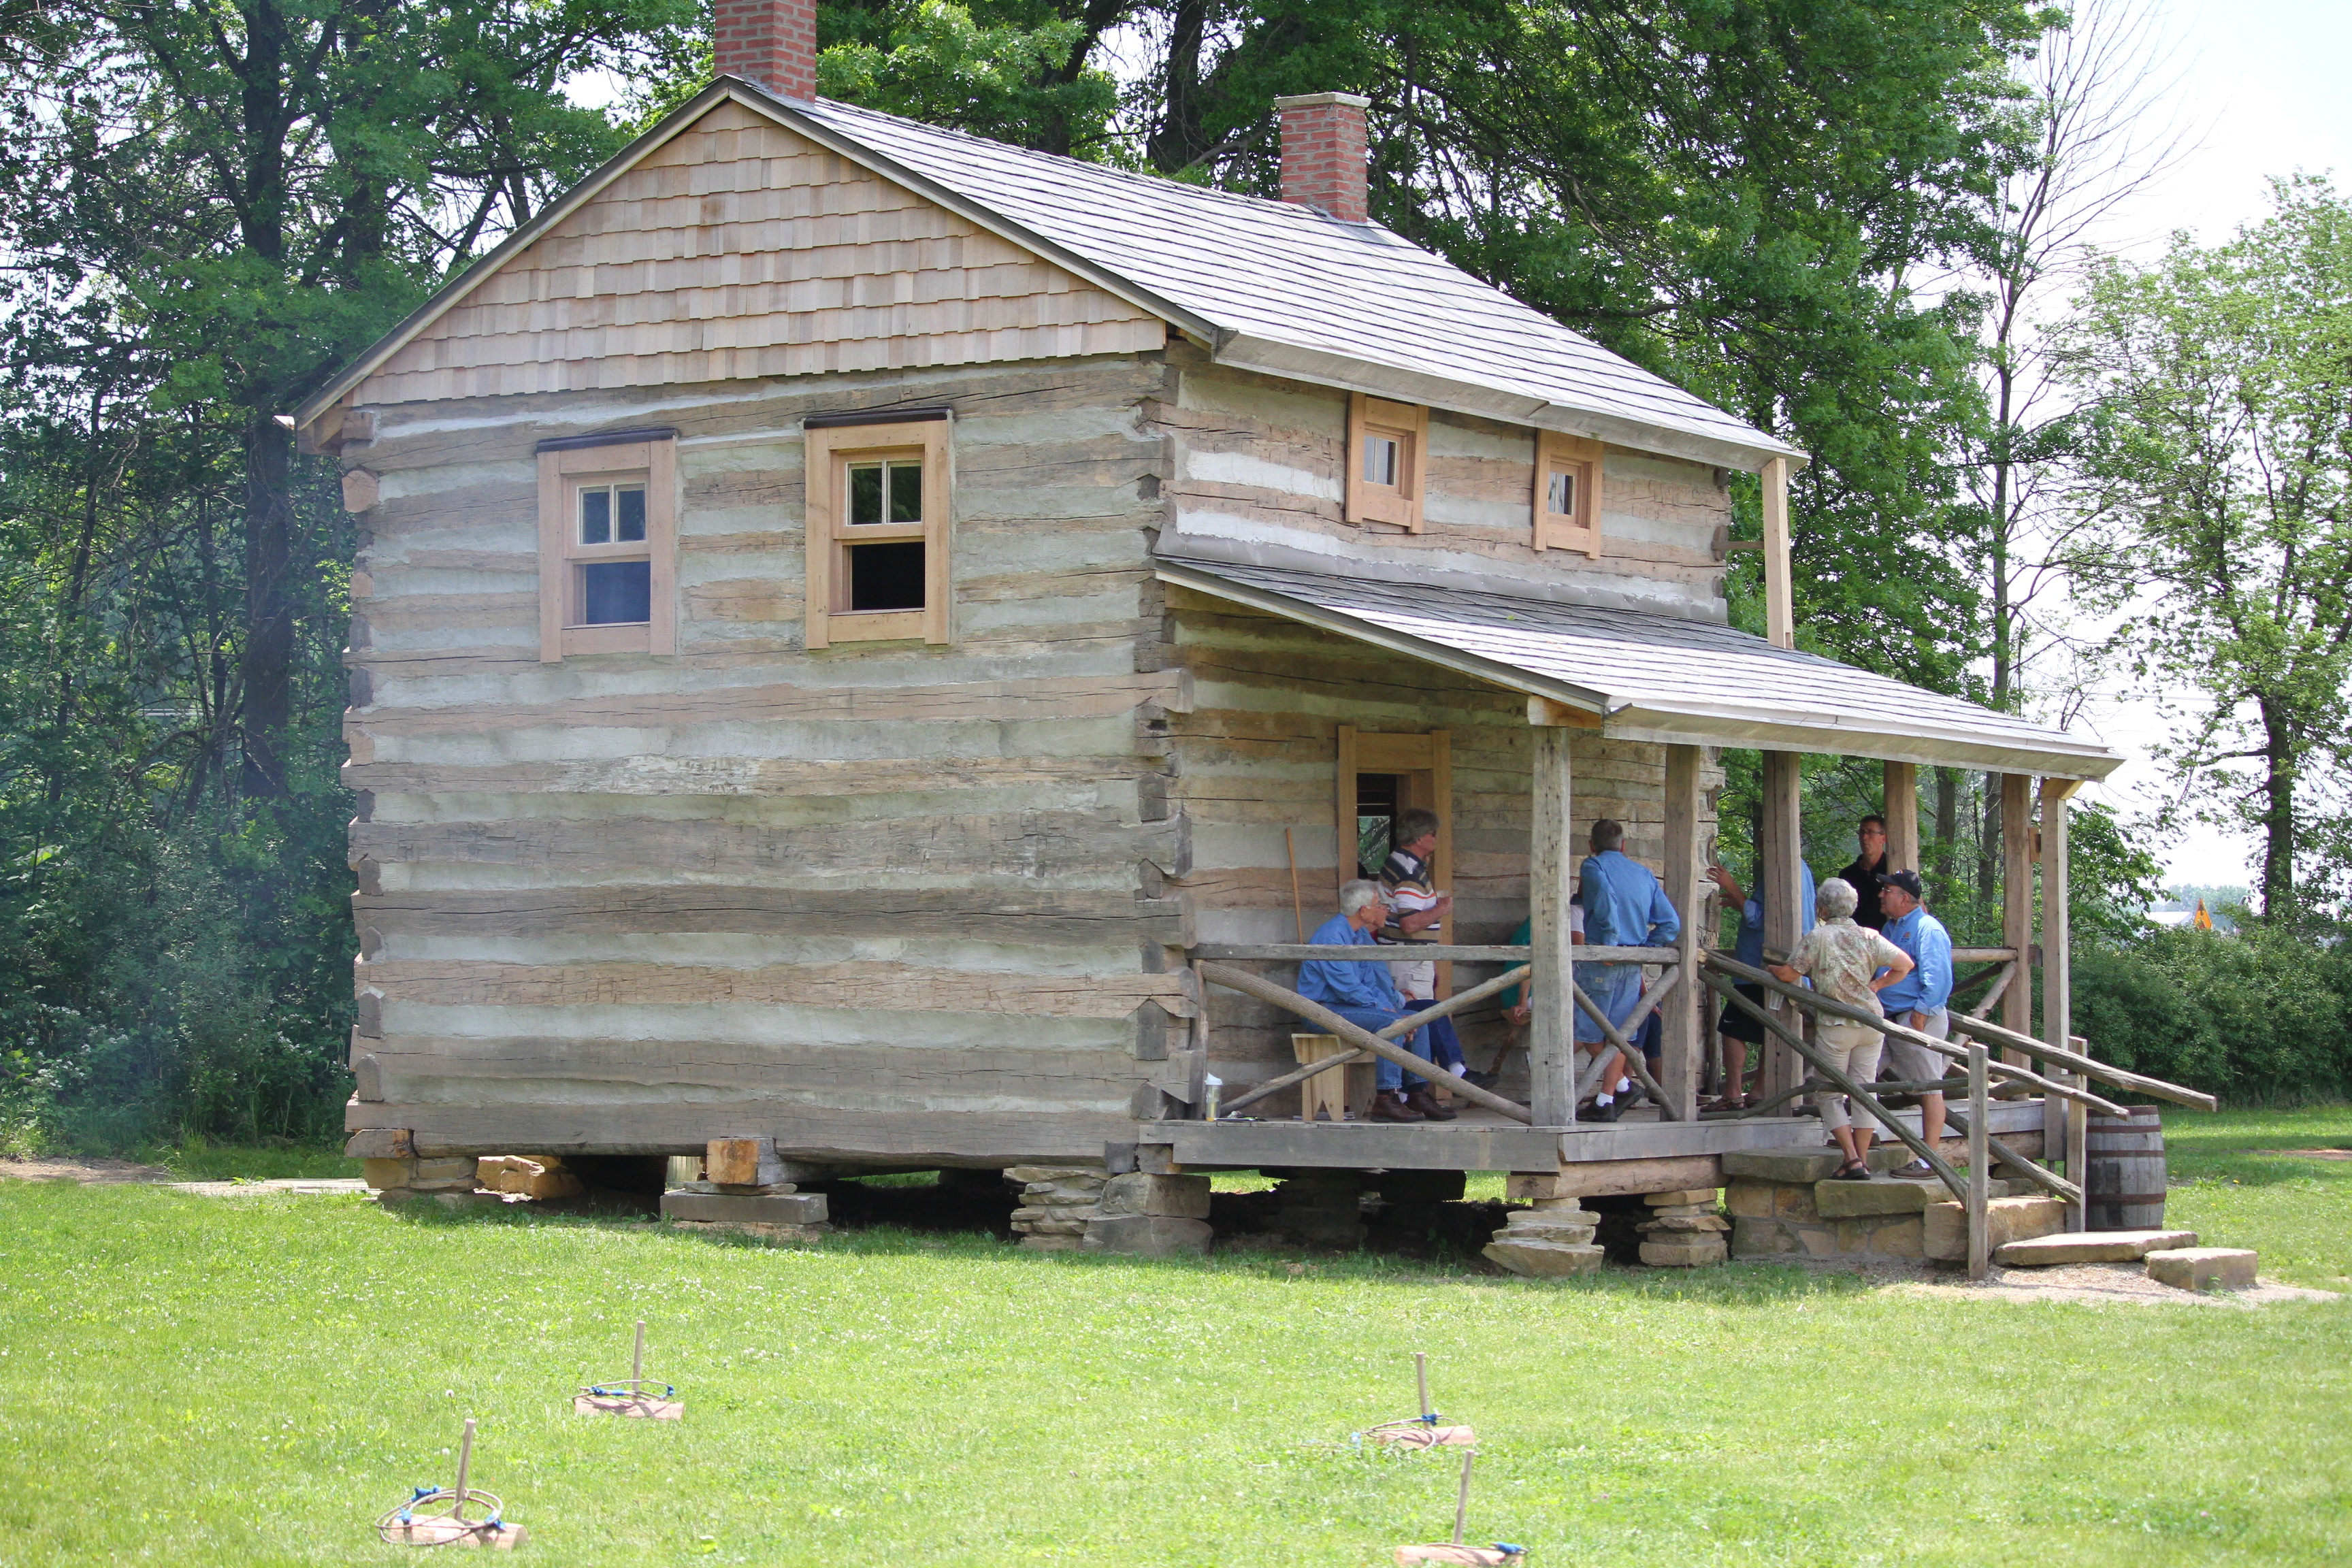 Open House At Historical Cabin Gives Visitors A View Into